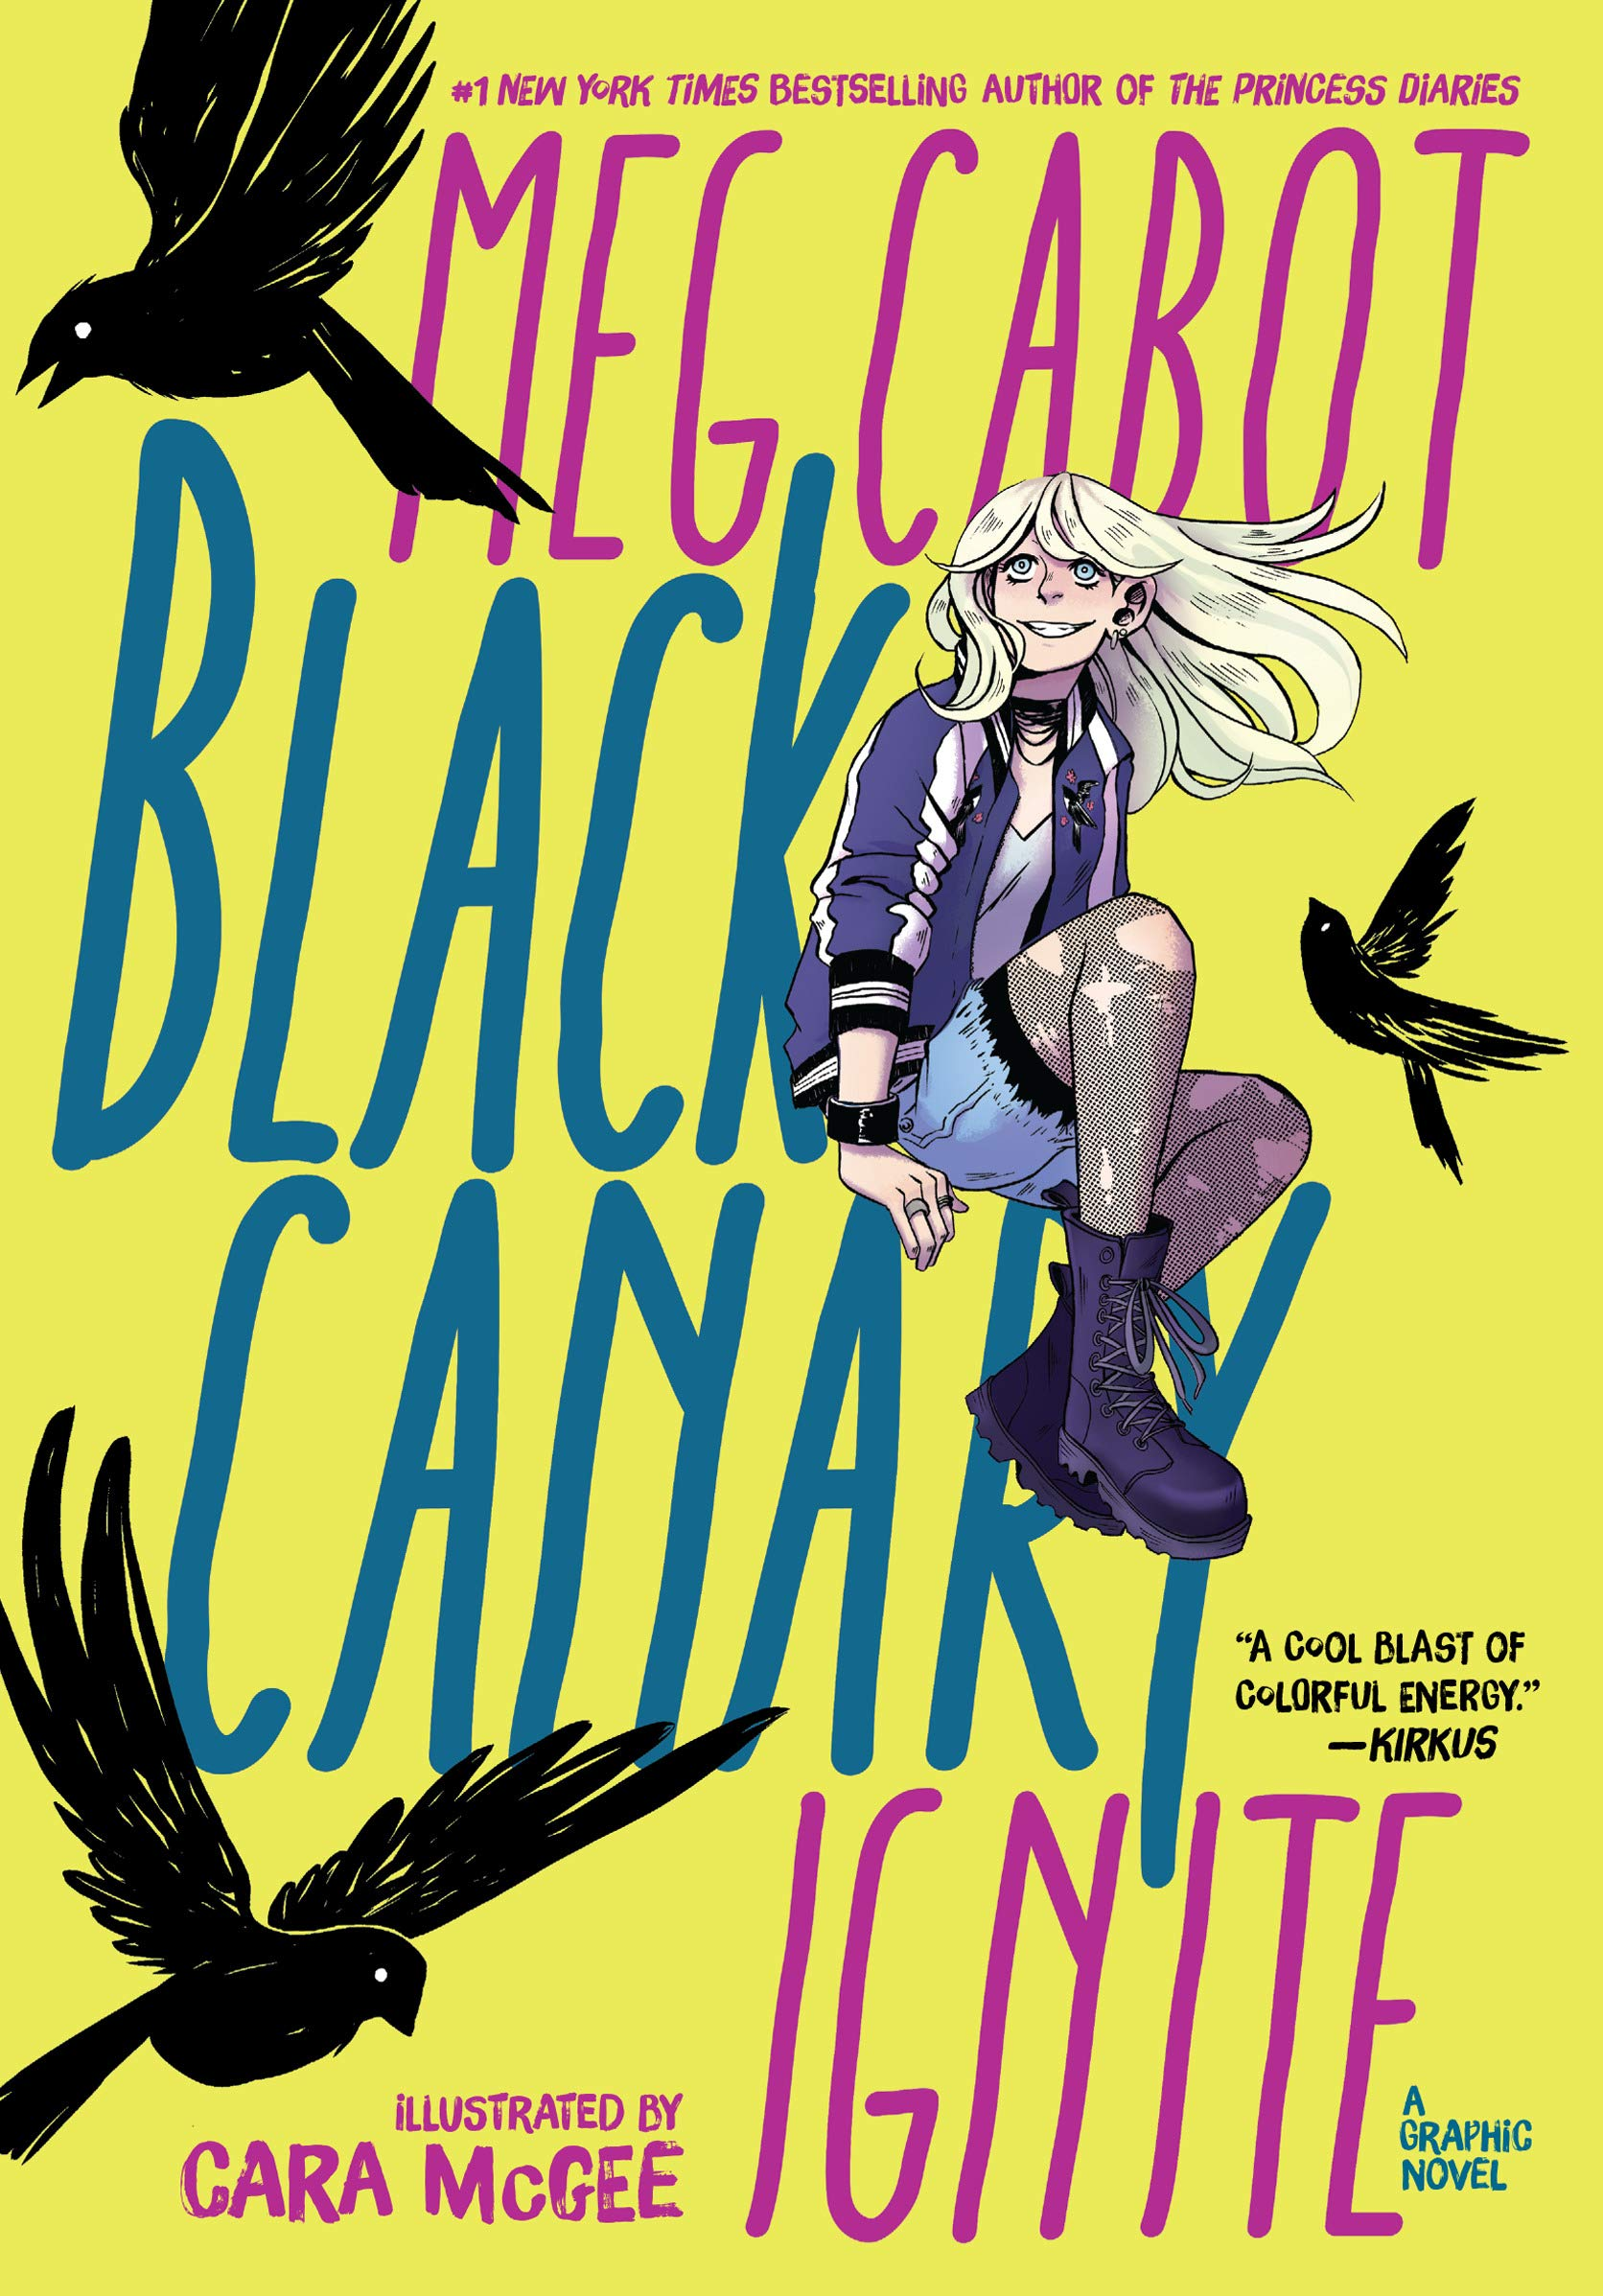 Image result for black canary ignite